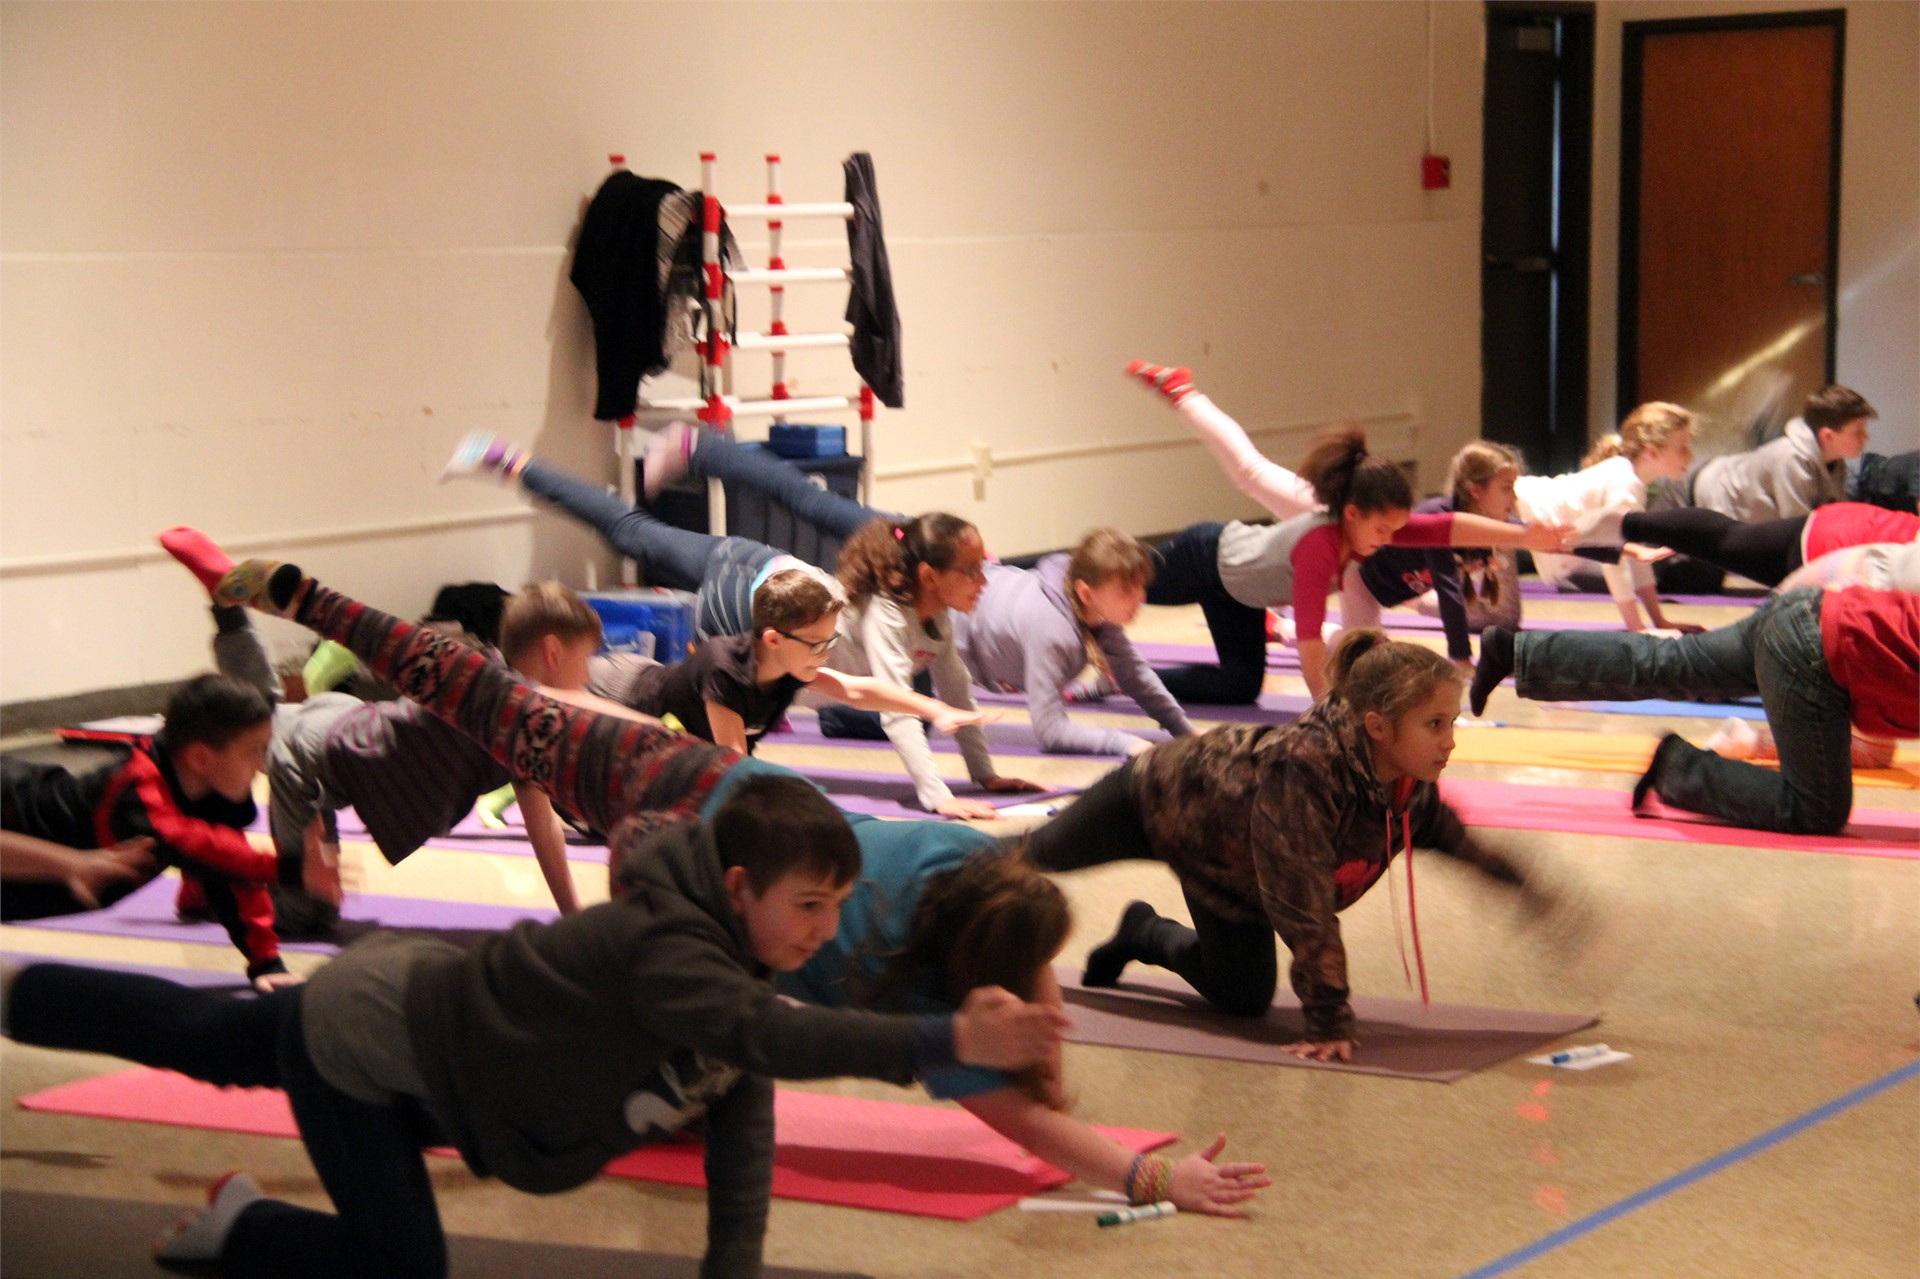 students trying yoga moves on mats